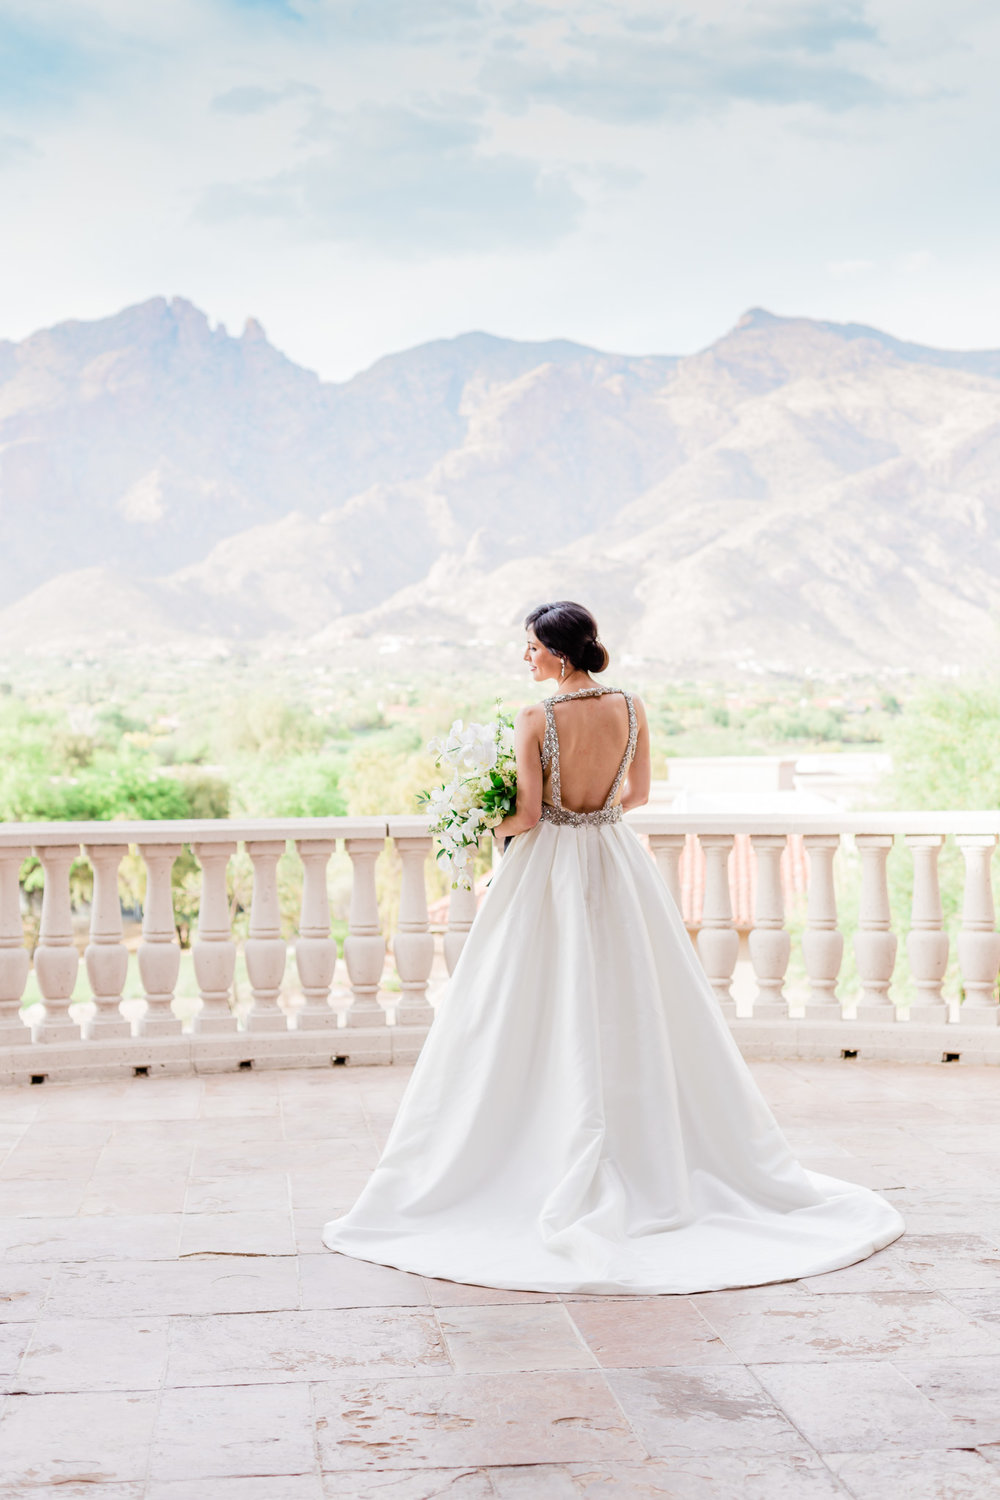 tucson wedding photography jlw for web  6.jpg